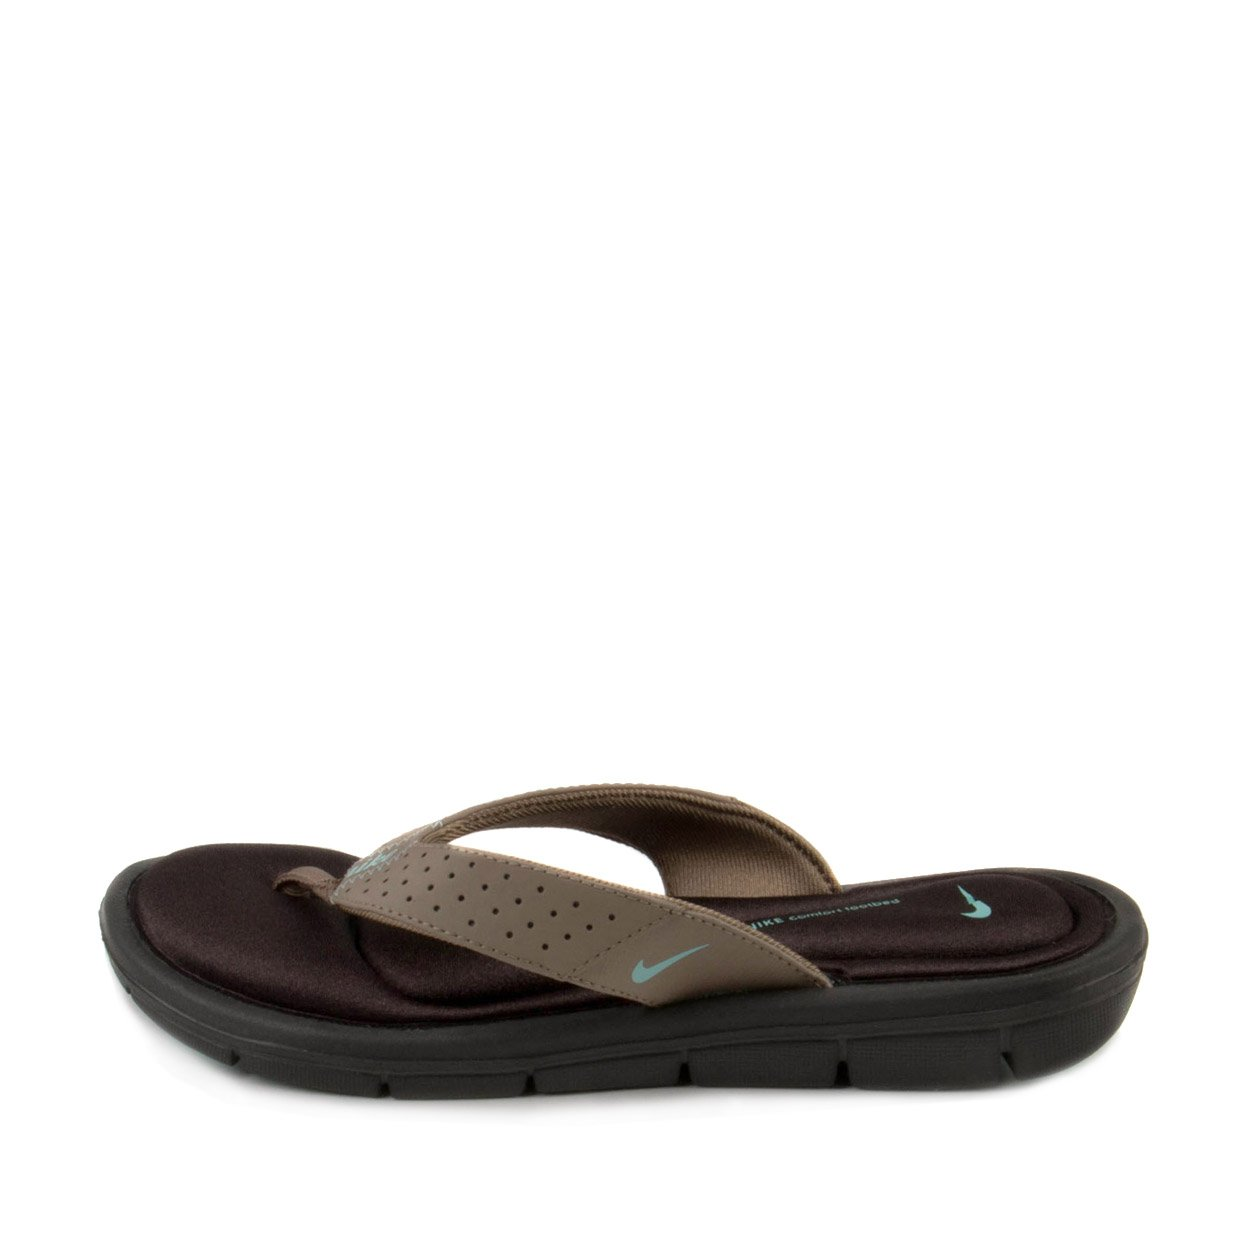 09270d8a7 Fitflop Branches Manila